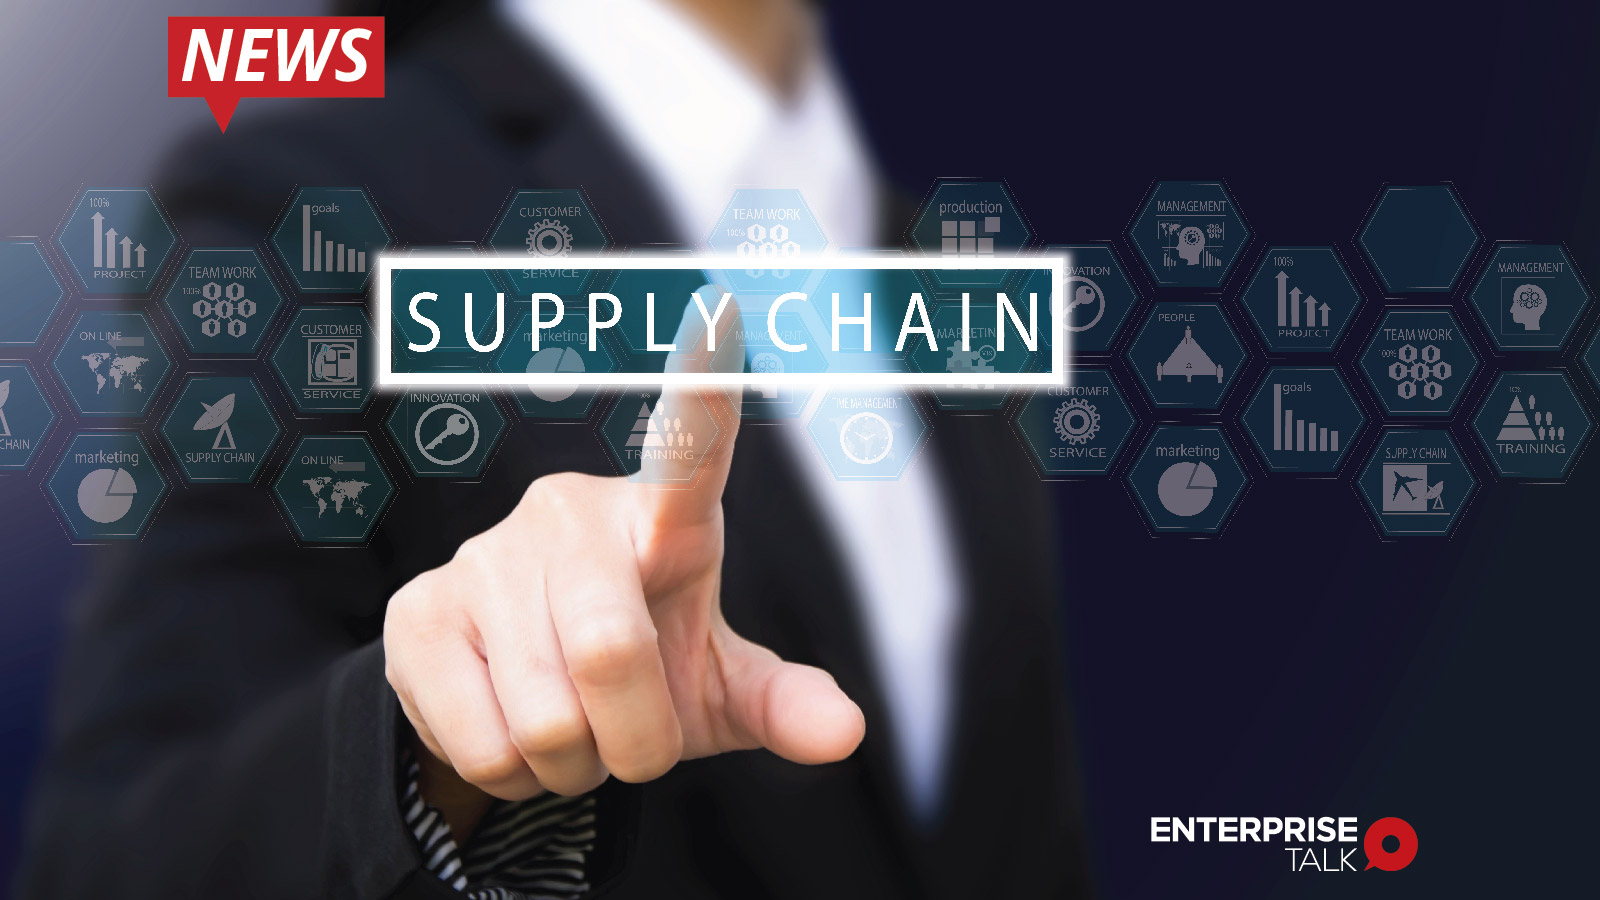 Liquid.com, SUKU, consumers and brands, supply chain and blockchain, financial services